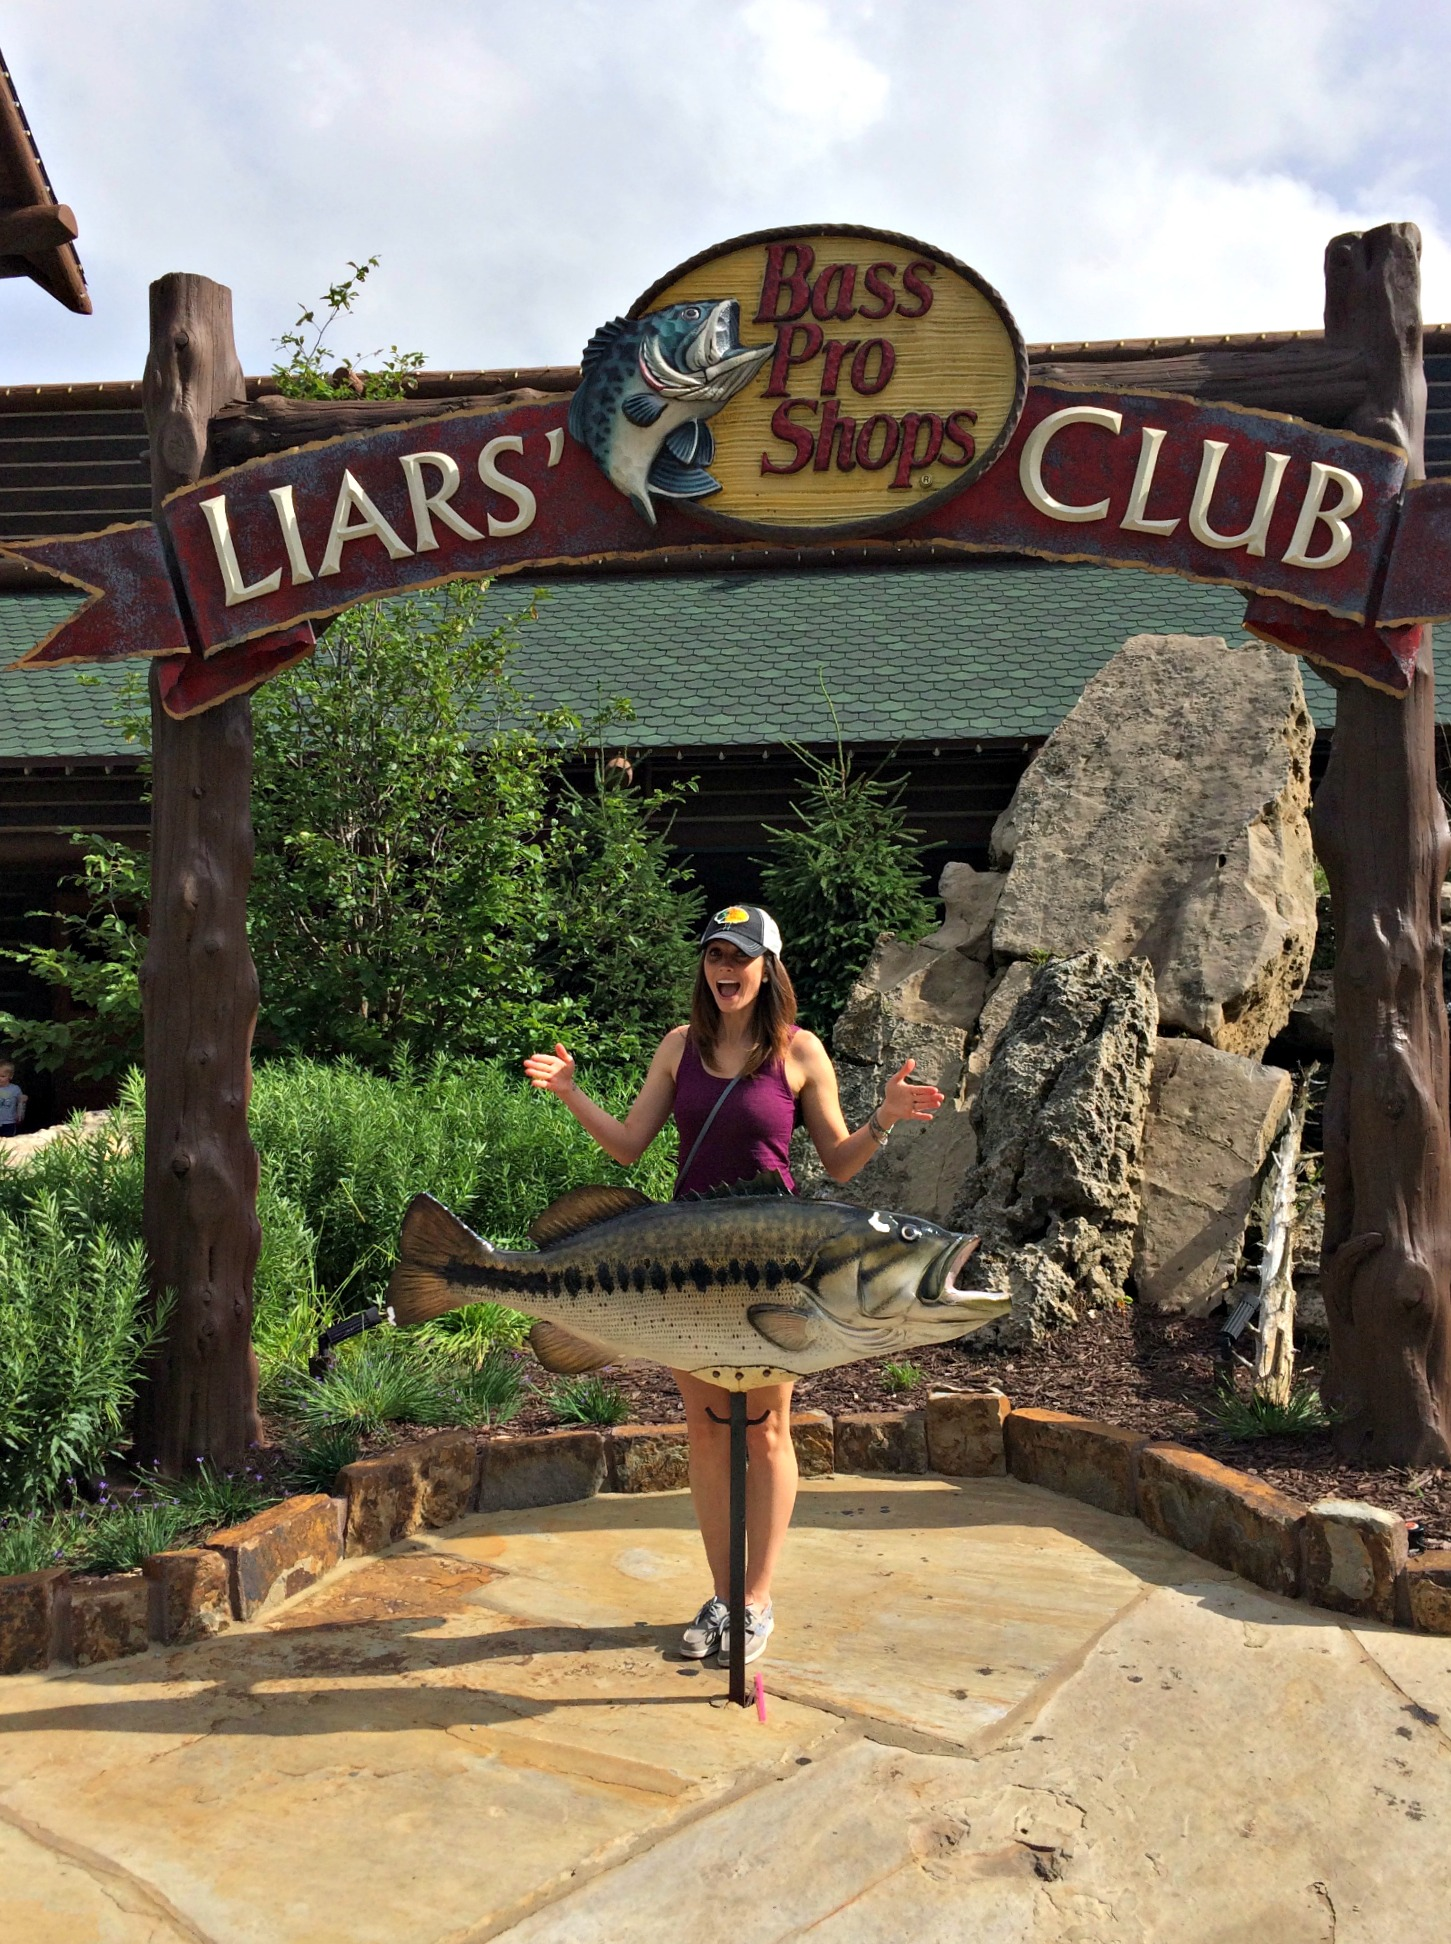 bass pro shops liars' club